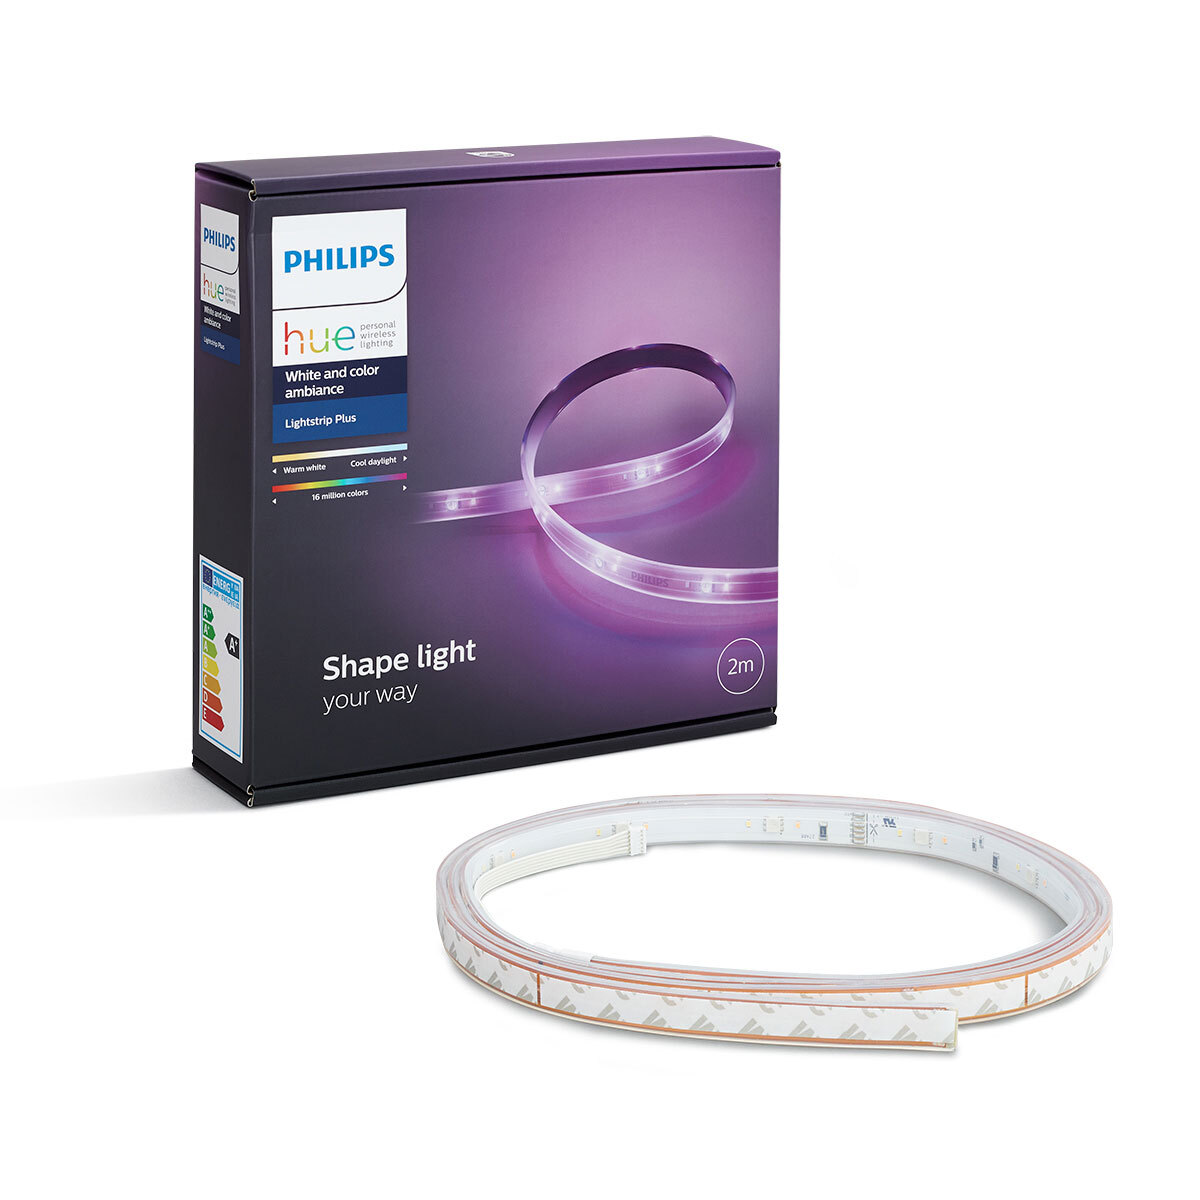 Philips Hue 2m Lightstrip Plus - Online | KG Electronic